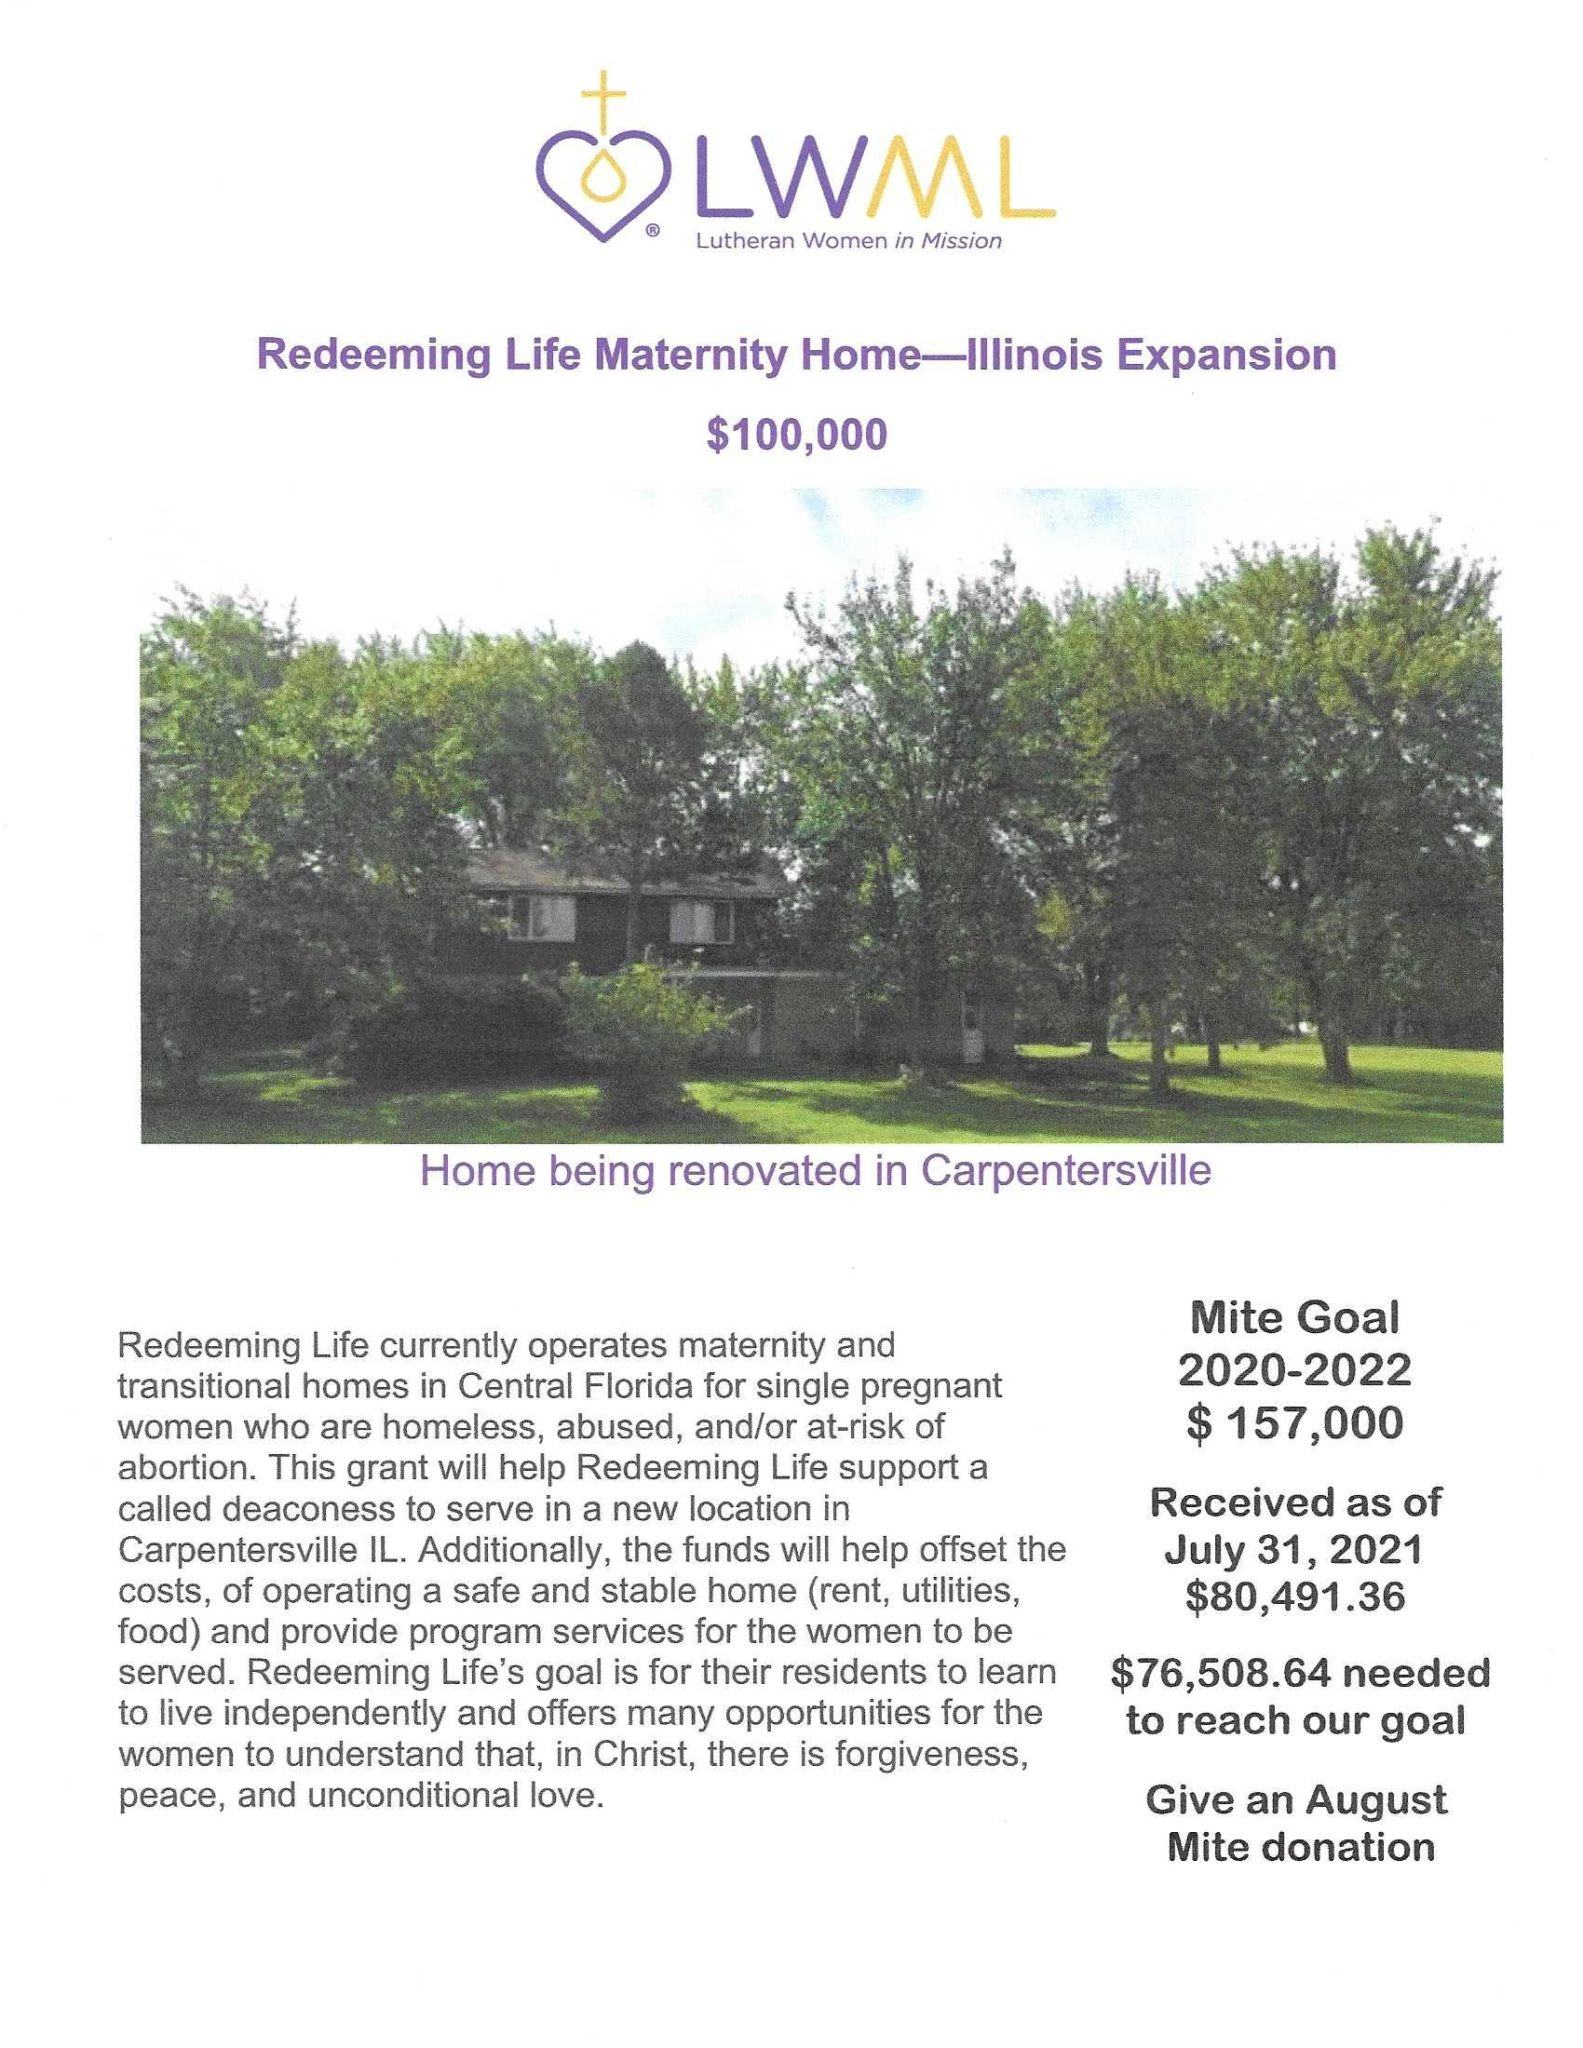 Redeeming Life Maternity Home Il Expansion mission grant poster